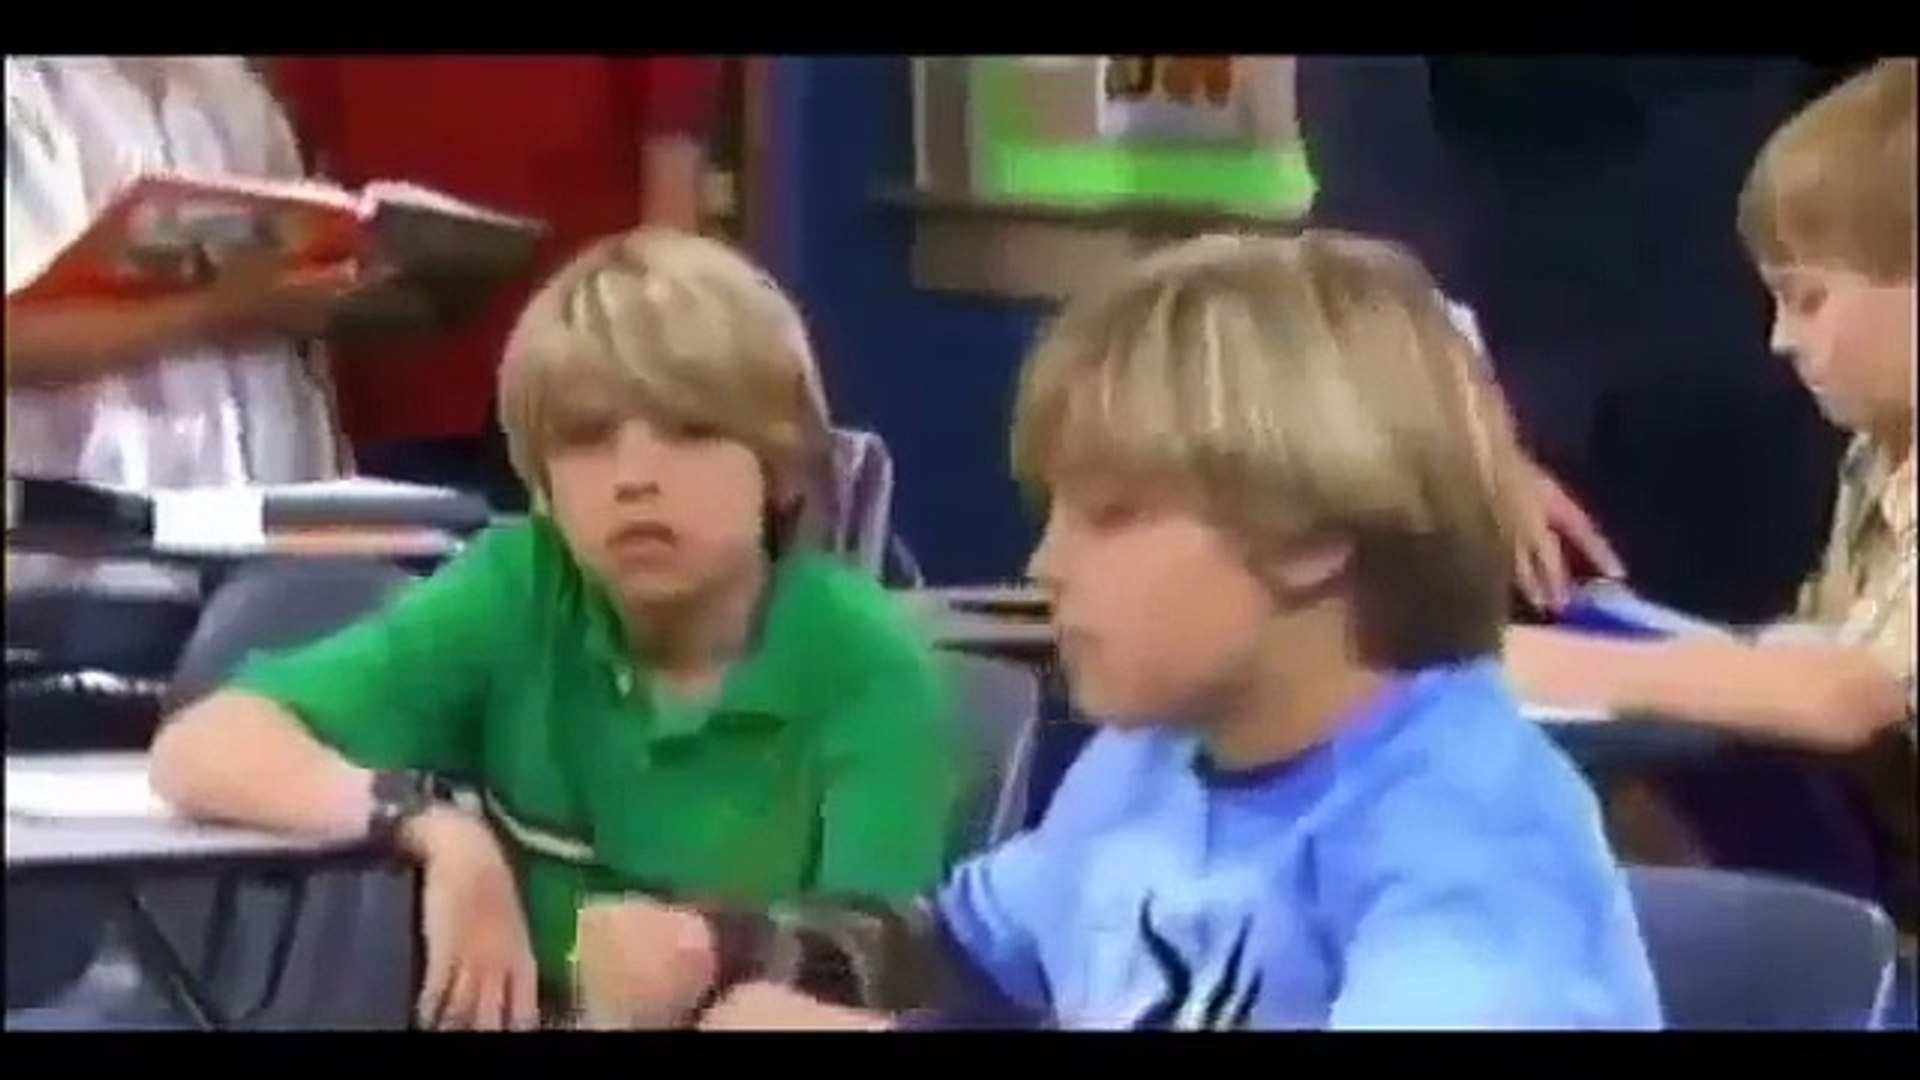 The Suite Life of Zack and Cody Season 1 Episode 18 Smart and Smarter